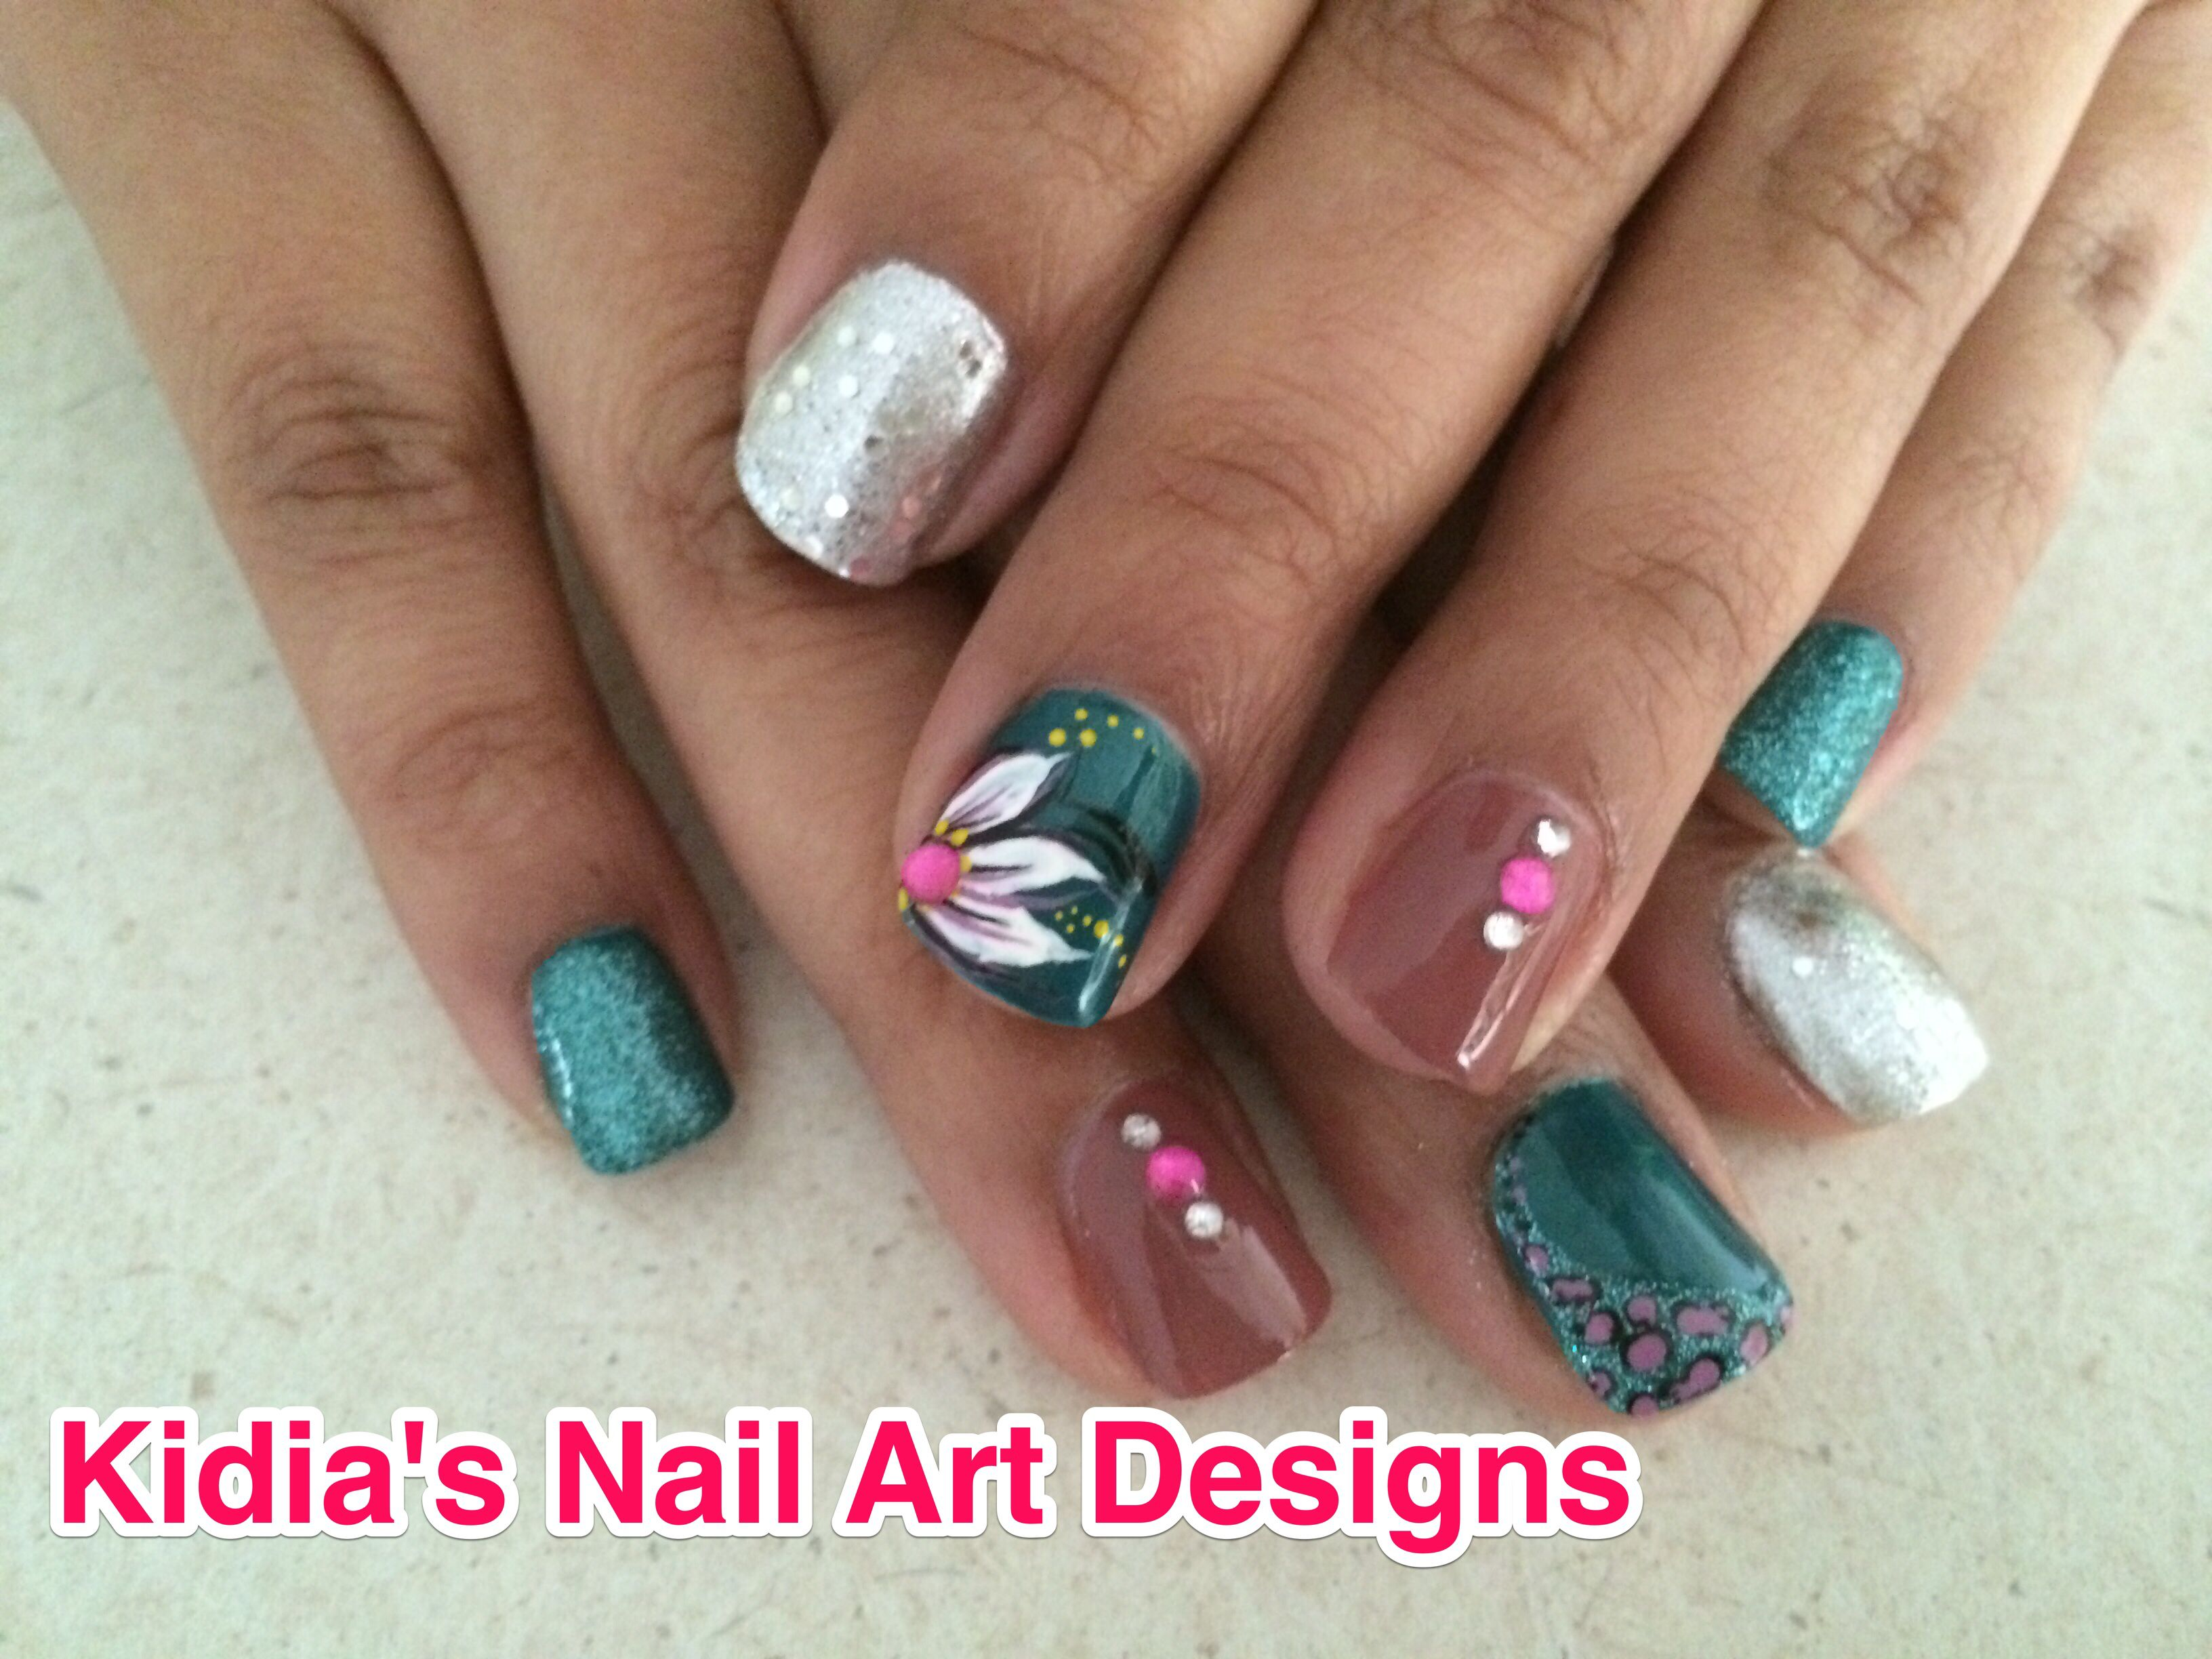 Flower Design On Natural Nail With Rhinestones Knad Pinterest